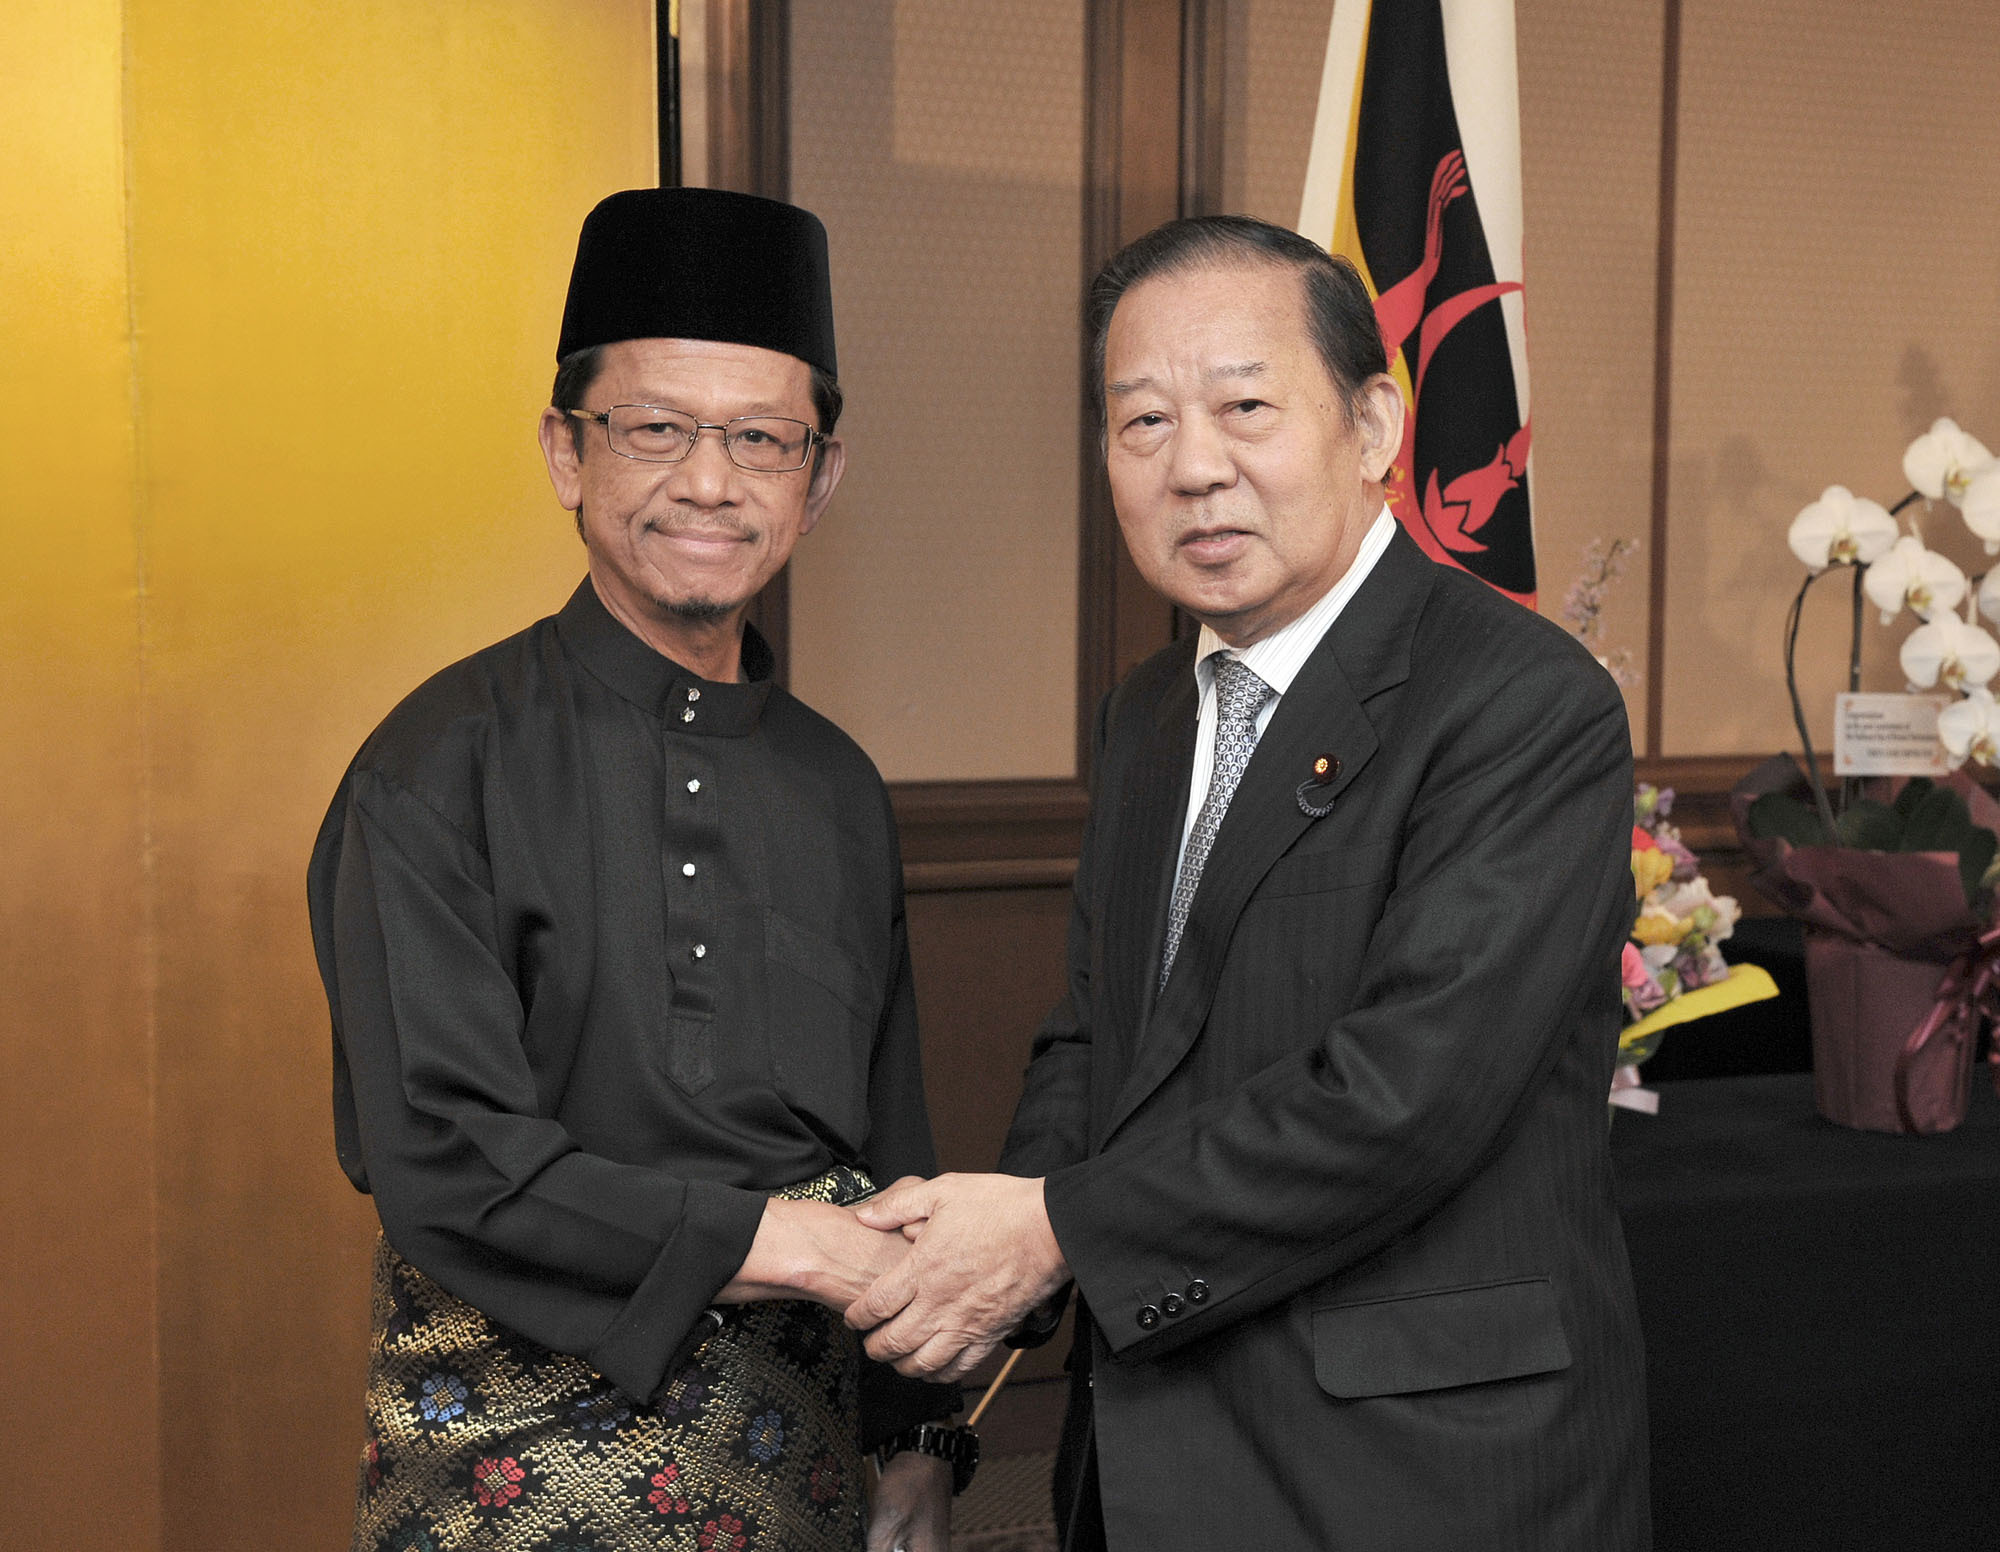 Brunei Ambassador Mahamud Ahmad (left) welcomes Toshihiro Nikai, chairman of the Japan-Brunei Parliamentary Friendship League, to a reception celebrating the 32nd anniversary of the National Day of Brunei Darussalam at the Imperial Hotel, Tokyo on Feb. 23. | YOSHIAKI MIURA